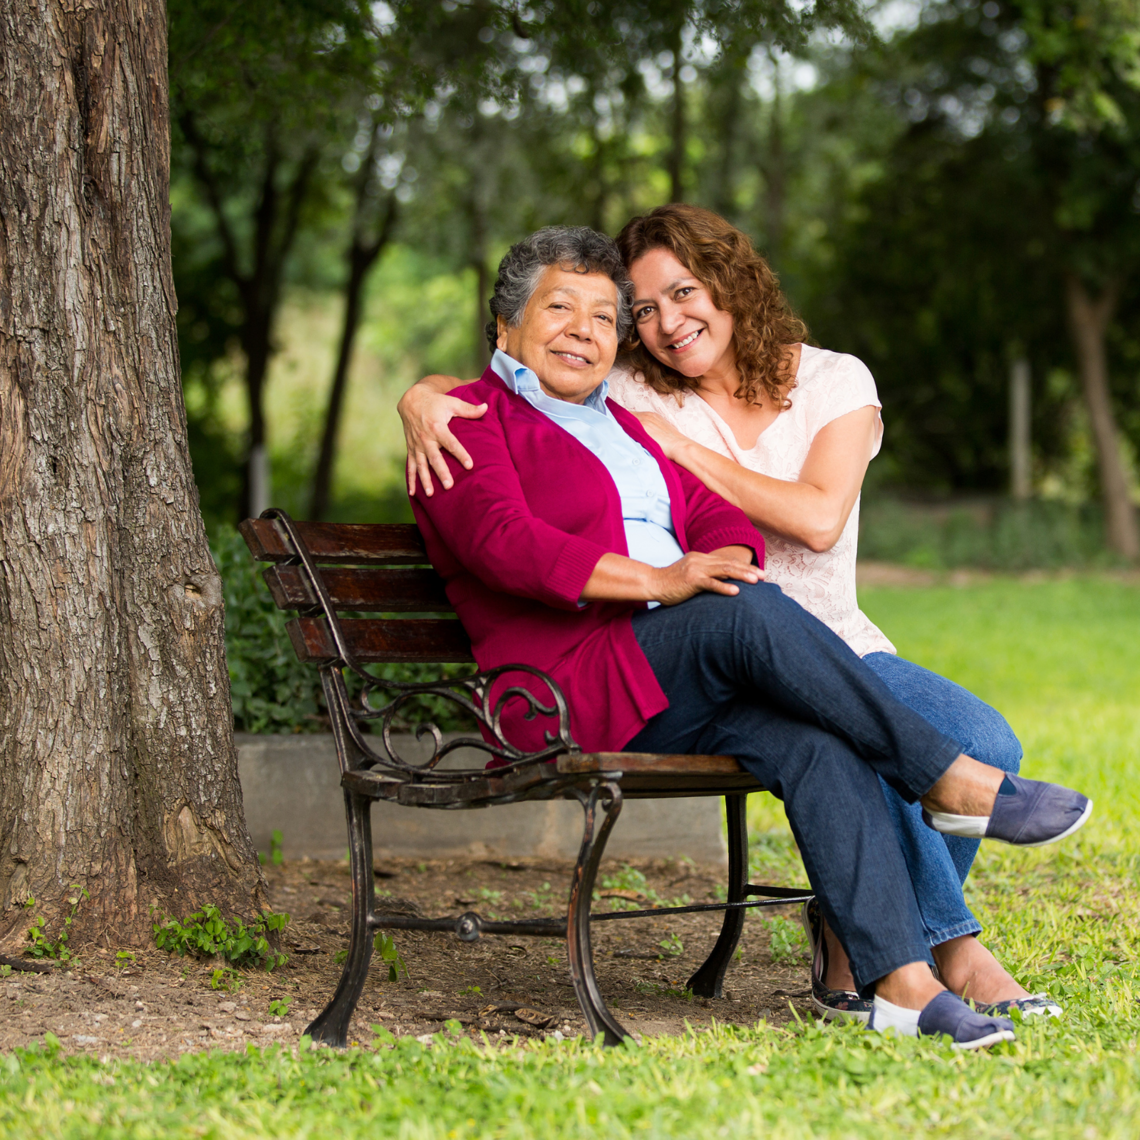 A senior woman and a middle aged woman embrace on a bench under a tree.